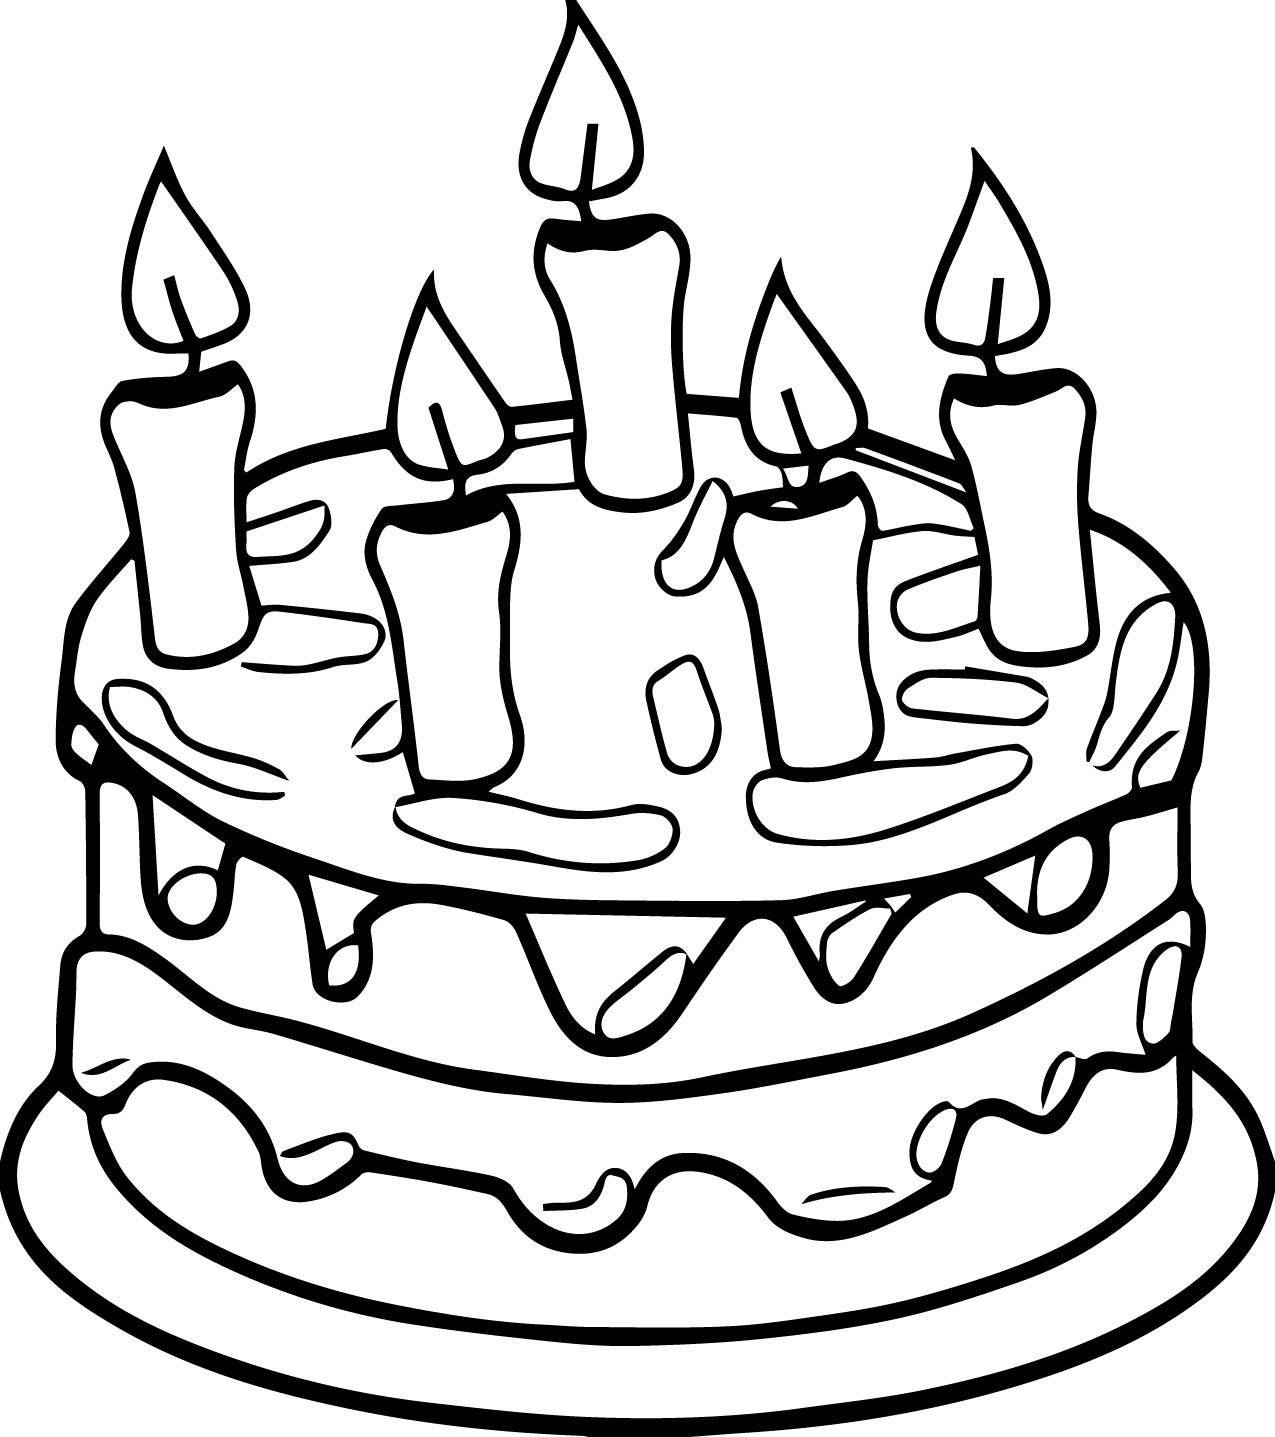 Free Colouring Pages Of Birthday Cakes